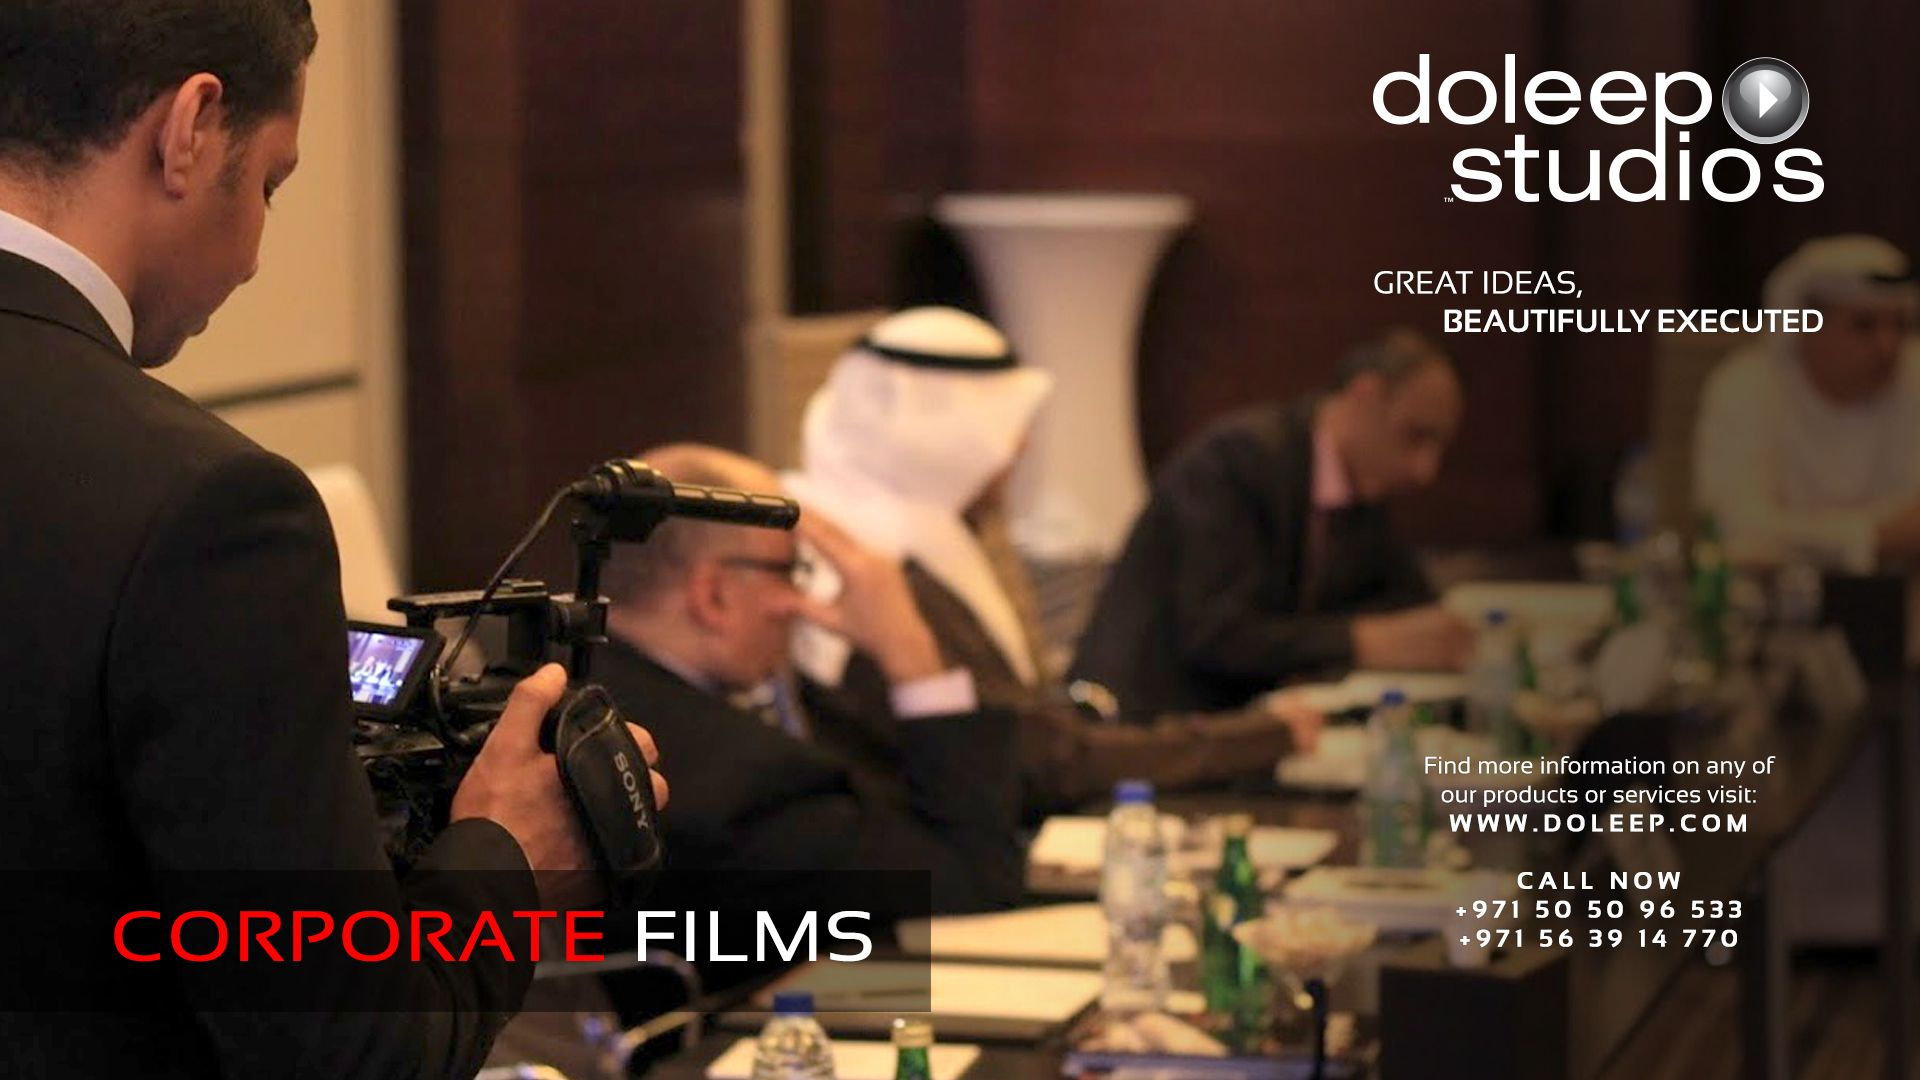 CORPORATE FILMS Making Services. Based on our feature film-making experience, Doleep Studios Contact Doleep Studios www.doleep.comcontact-2 Sales Team +971505096533 +971563914770 Sales sales@doleep.com Customer care care@doleep.com Find more information on any of our products or services visit www.doleep.com Follow us on Social media #business #entrepreneur #fortune #leadership #CEO #achievement #greatideas #quote #vision #foresight #success #quality #motivation